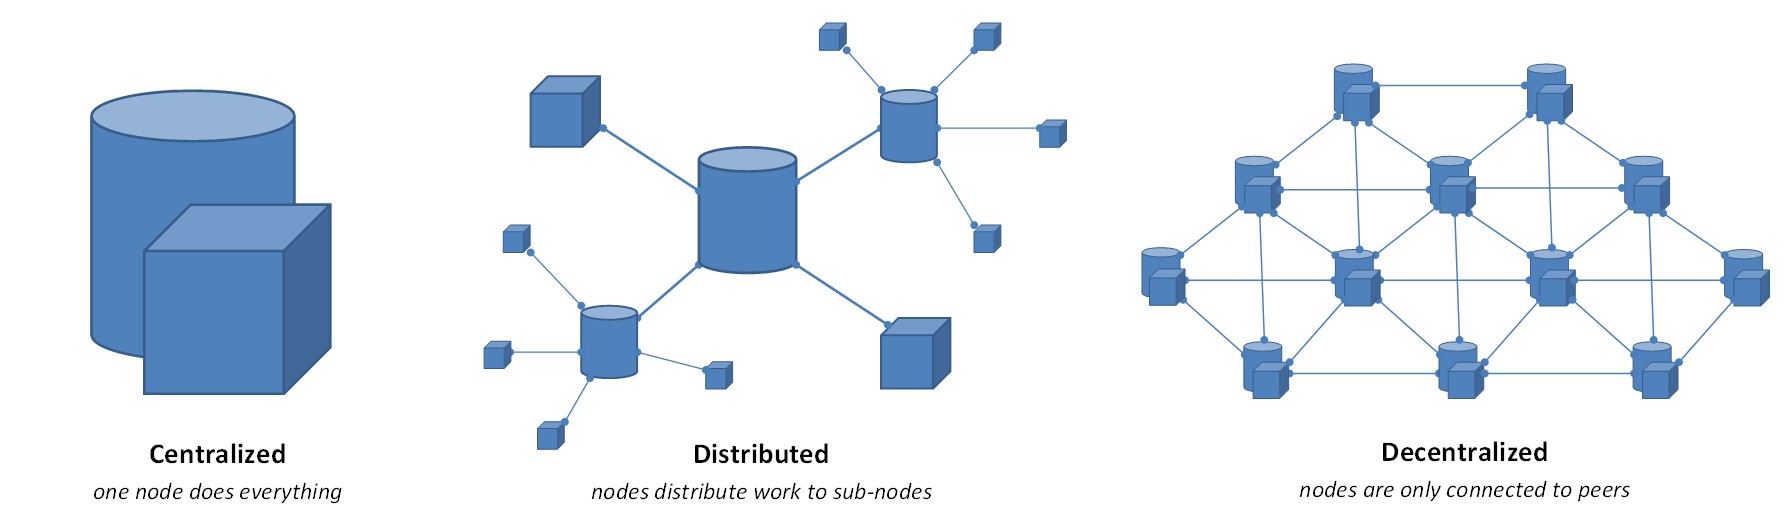 decentralized and distributed systems